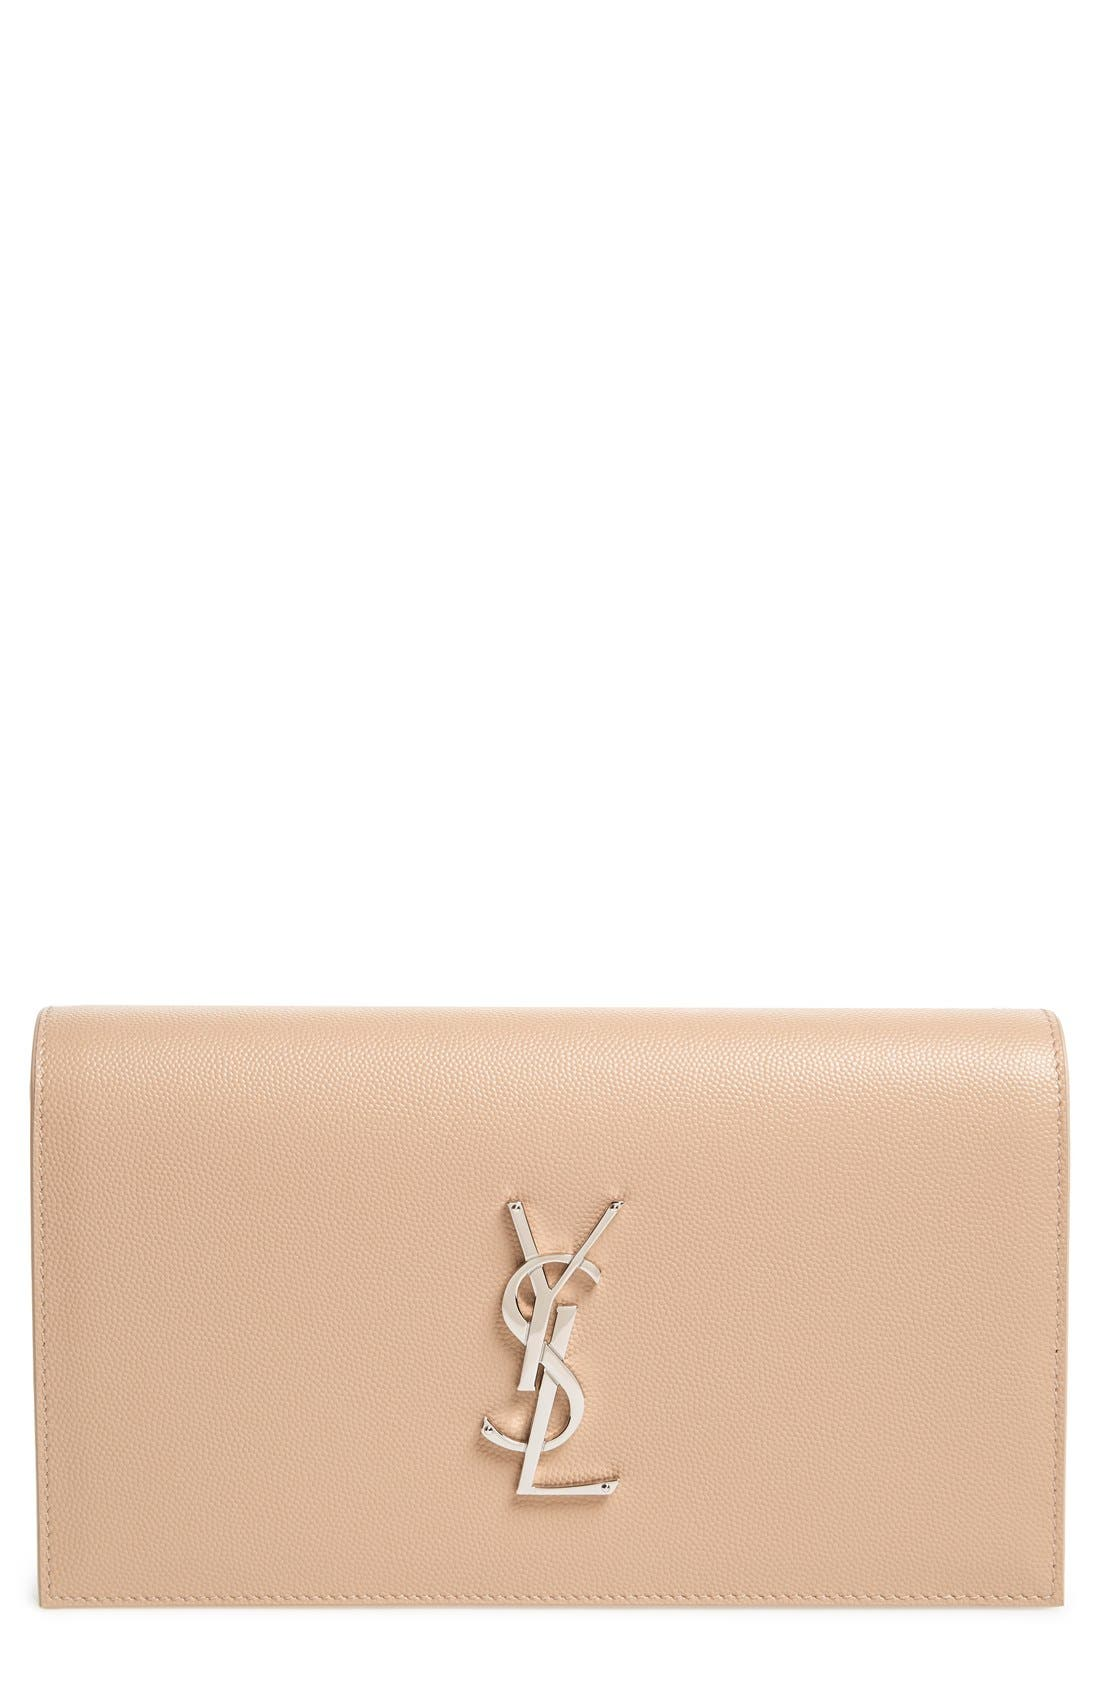 Main Image - Saint Laurent 'Monogram' Leather Clutch